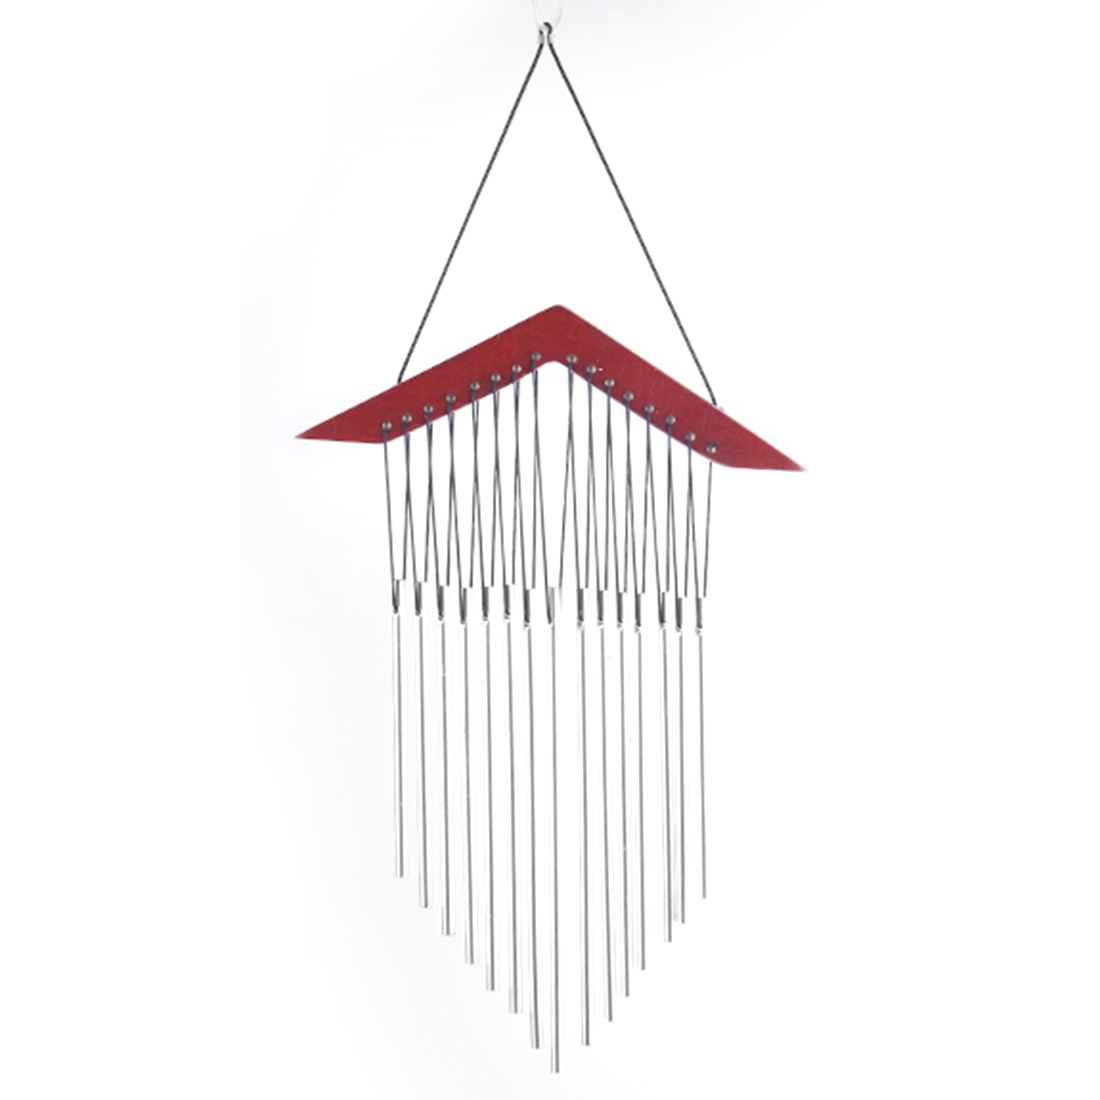 SDFC-Roof type 15 tube wood music wind chimes creative birthday gift bedroom balcony courtyard garden outdoor metal pipe wind